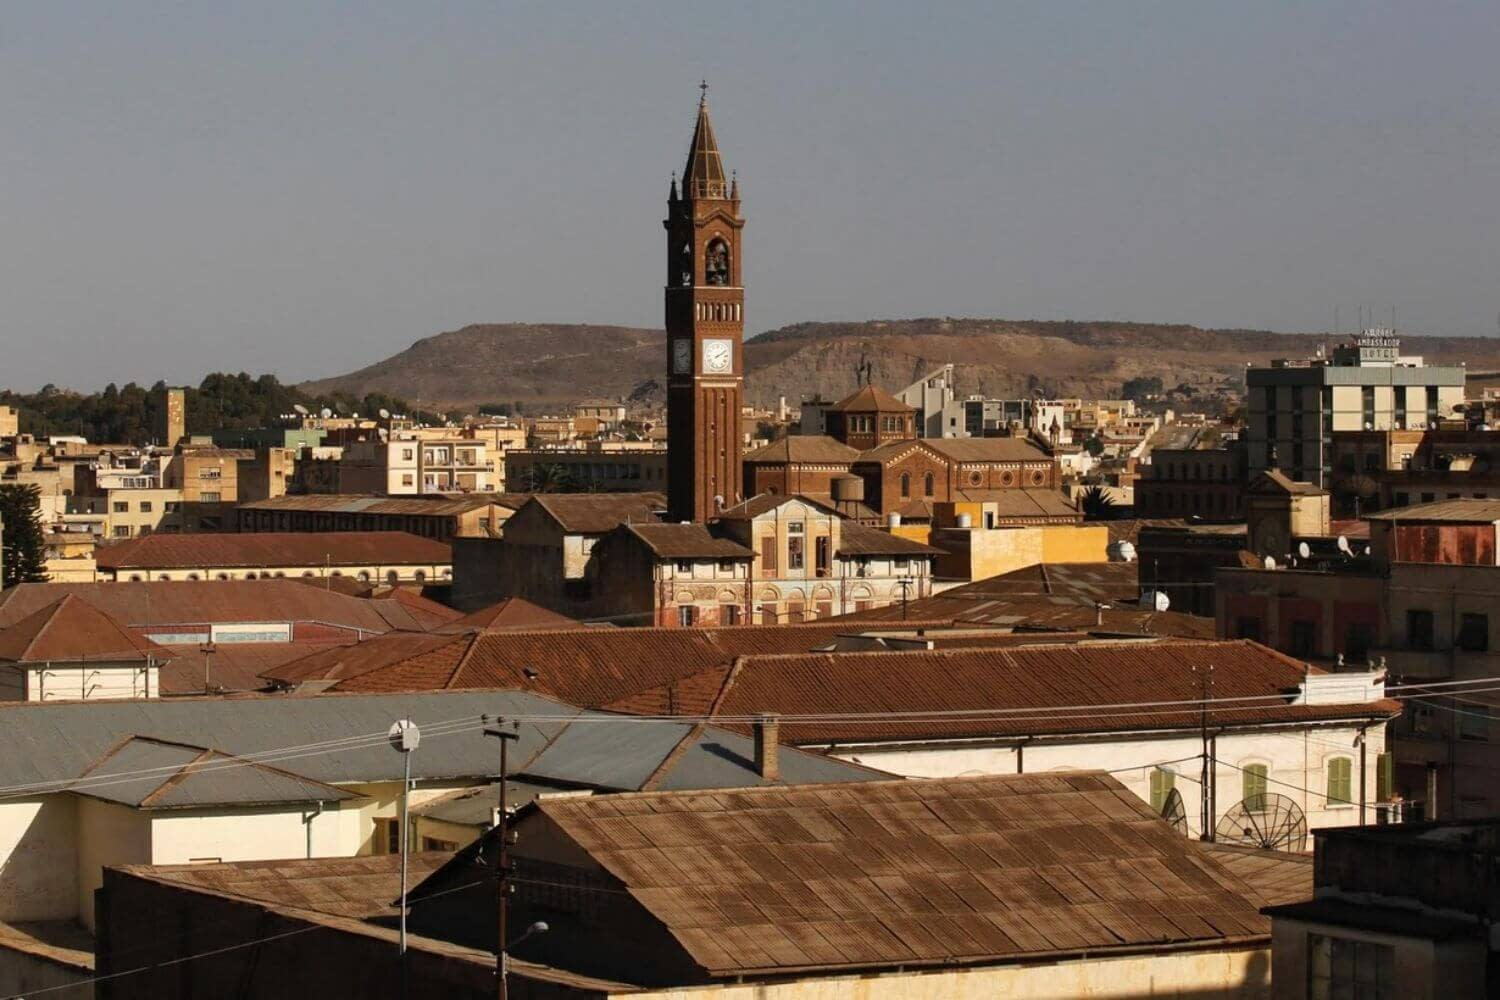 Asmara picture from the top